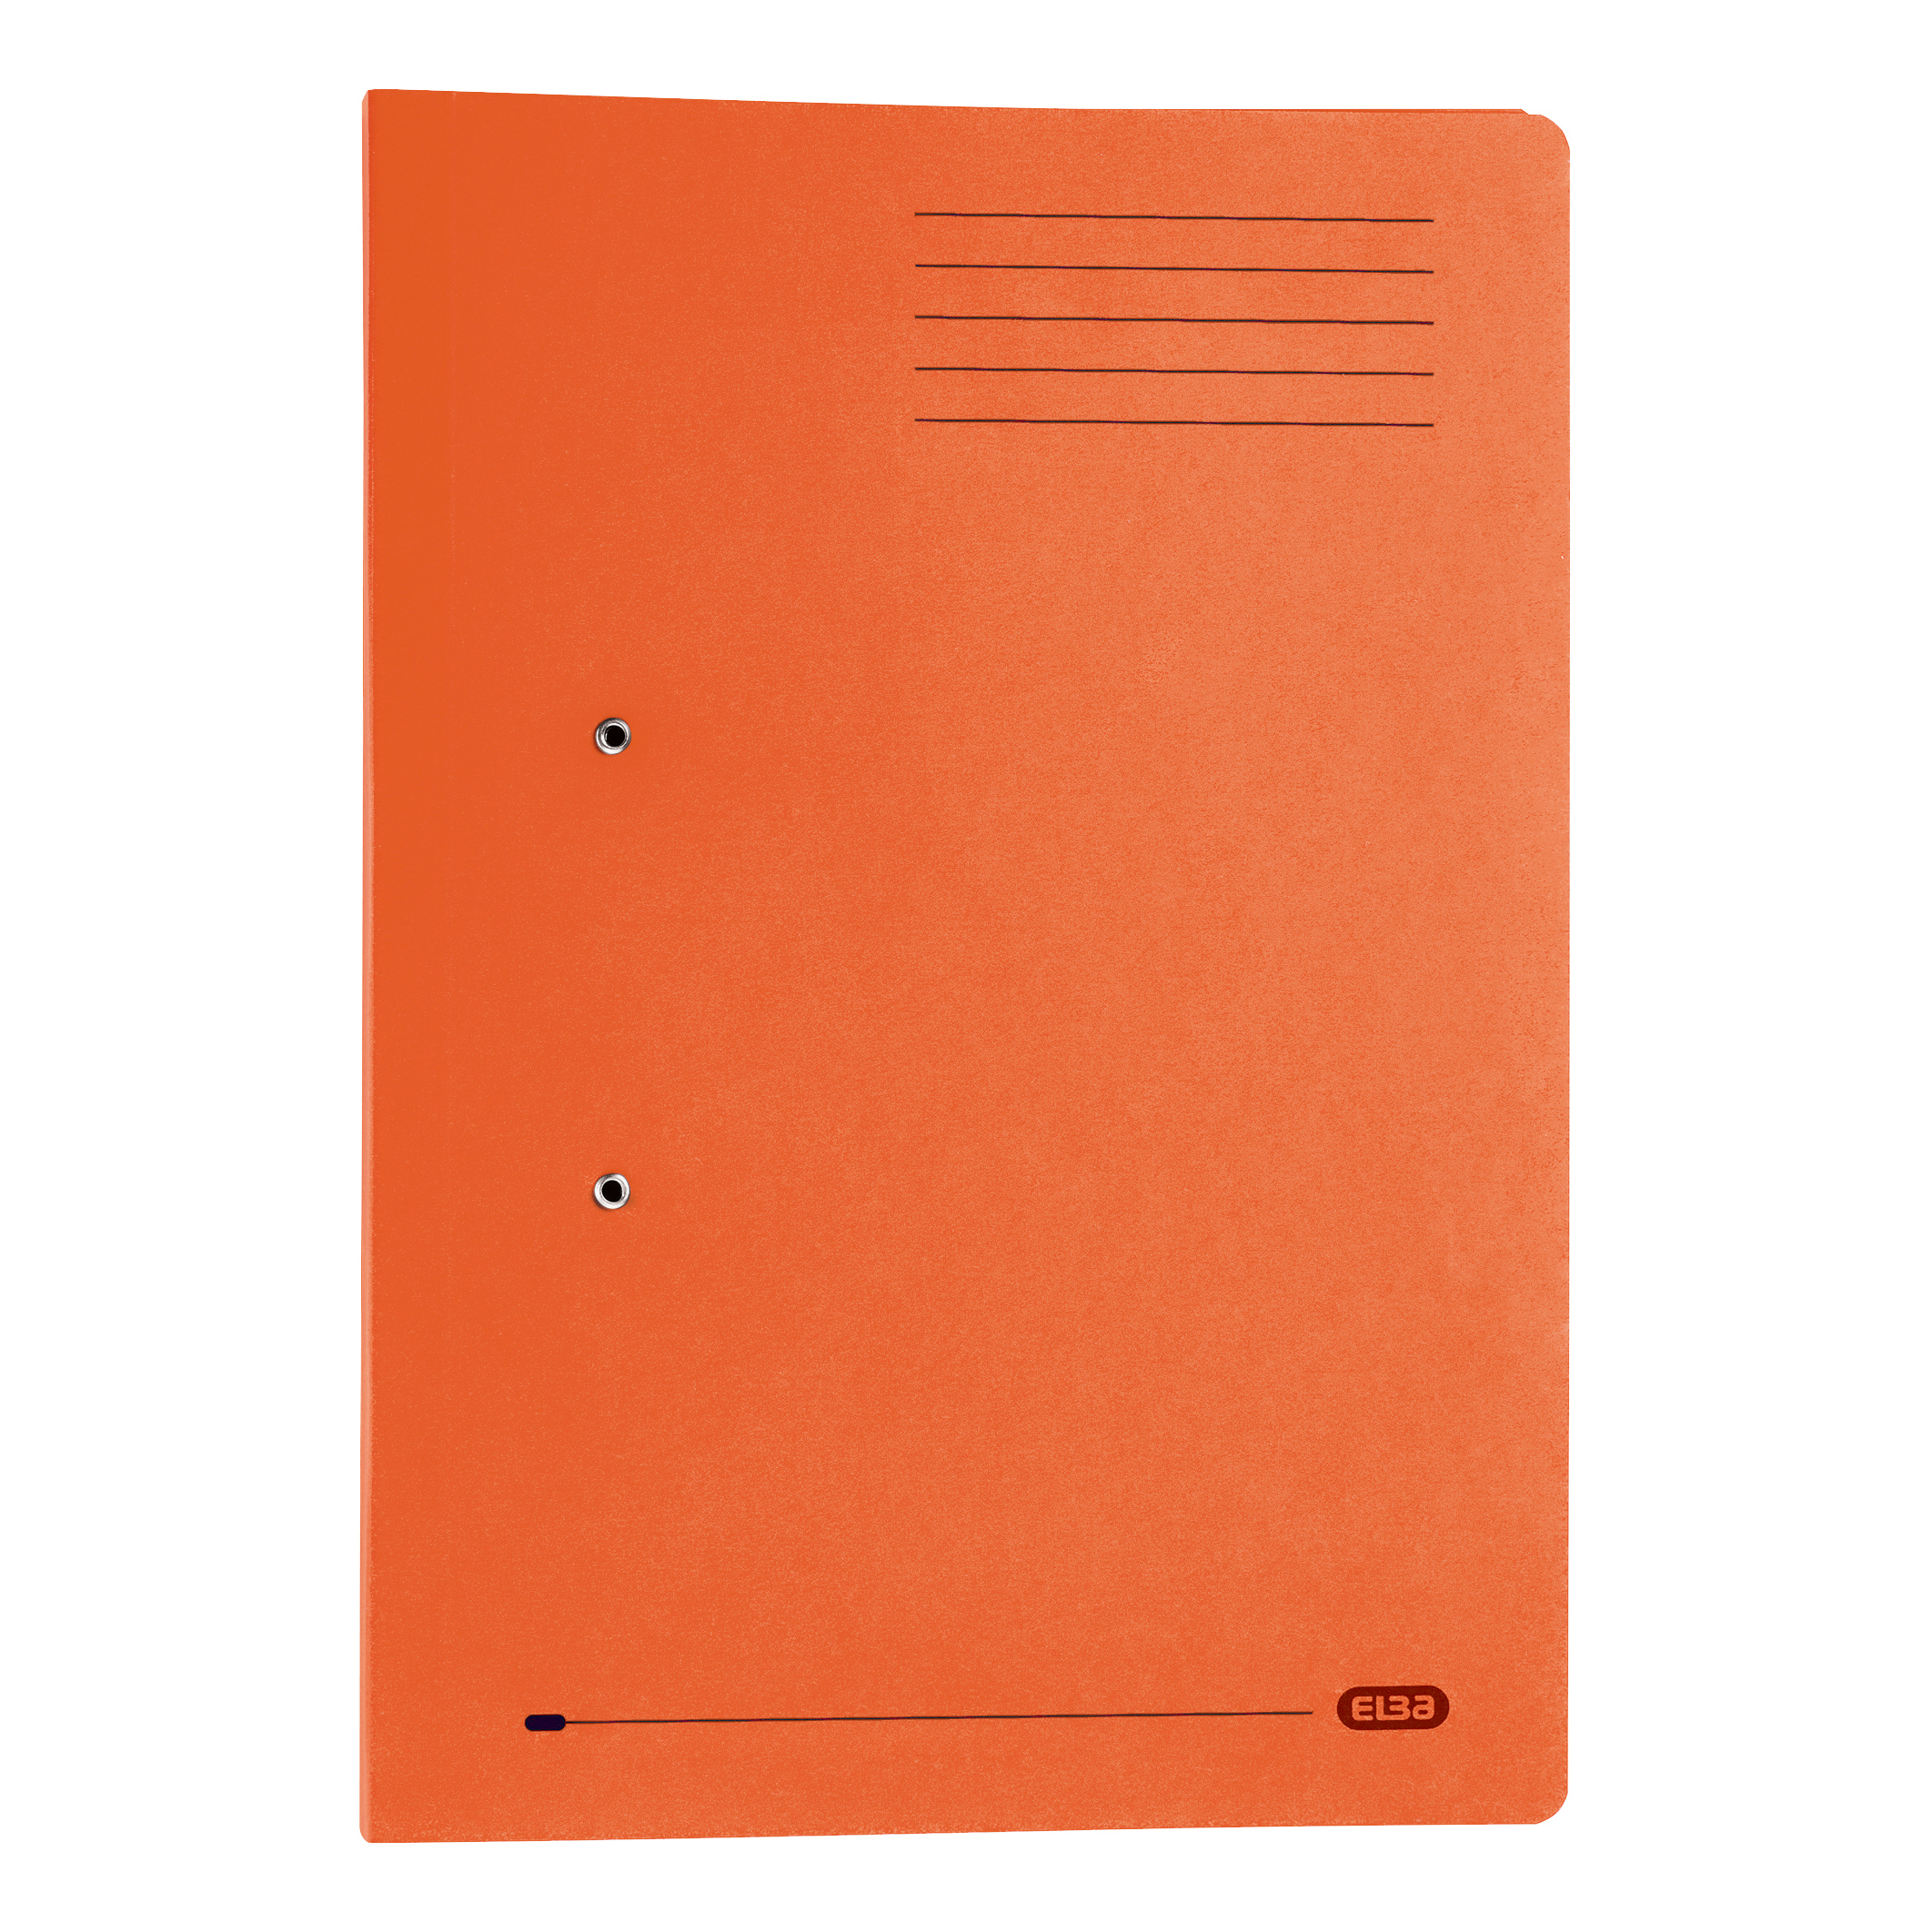 Elba StrongLine Transfer Spring File Recycled 320gsm Foolscap Orange Ref 100090148 Pack 25 REDEMPTION